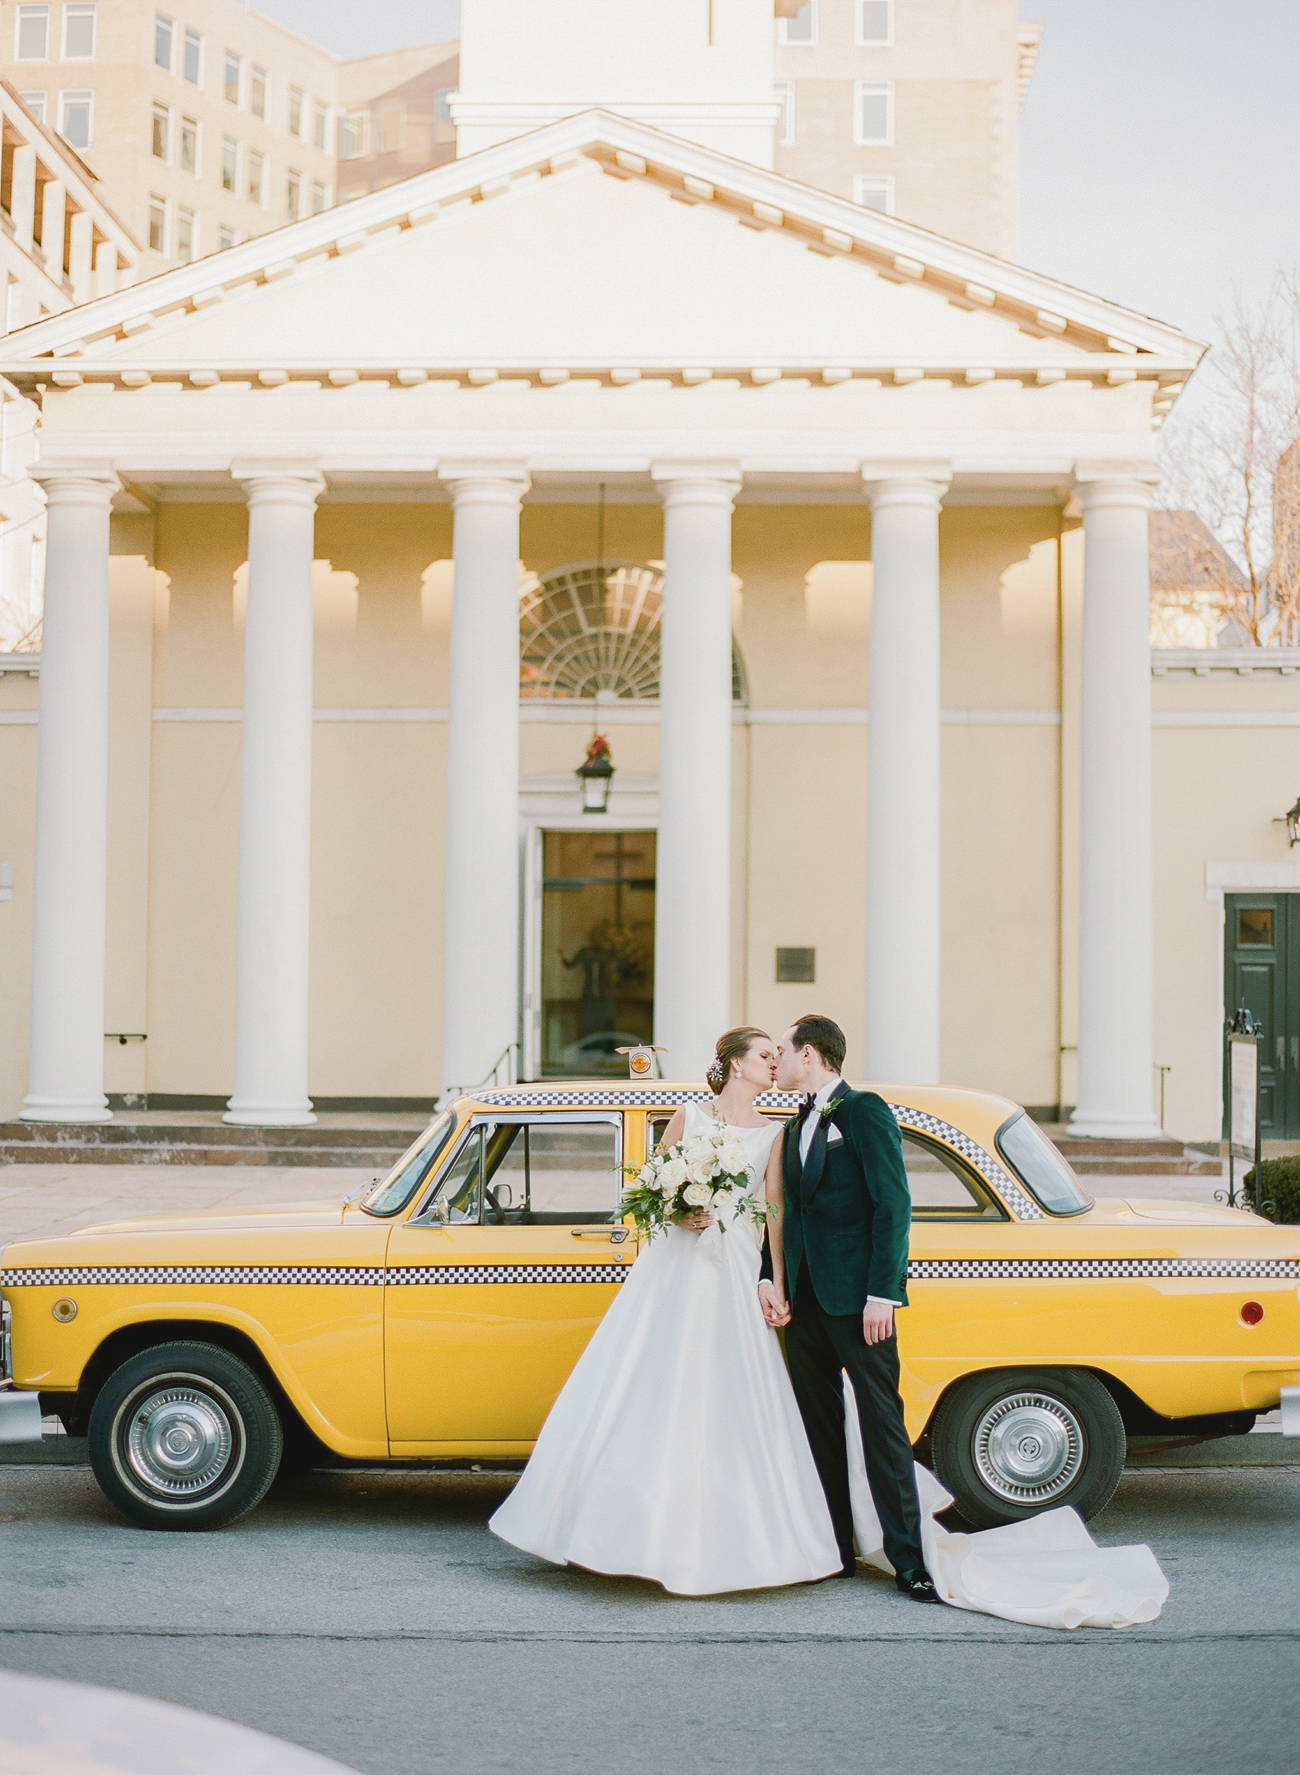 bride and groom standing next to taxi cab outside